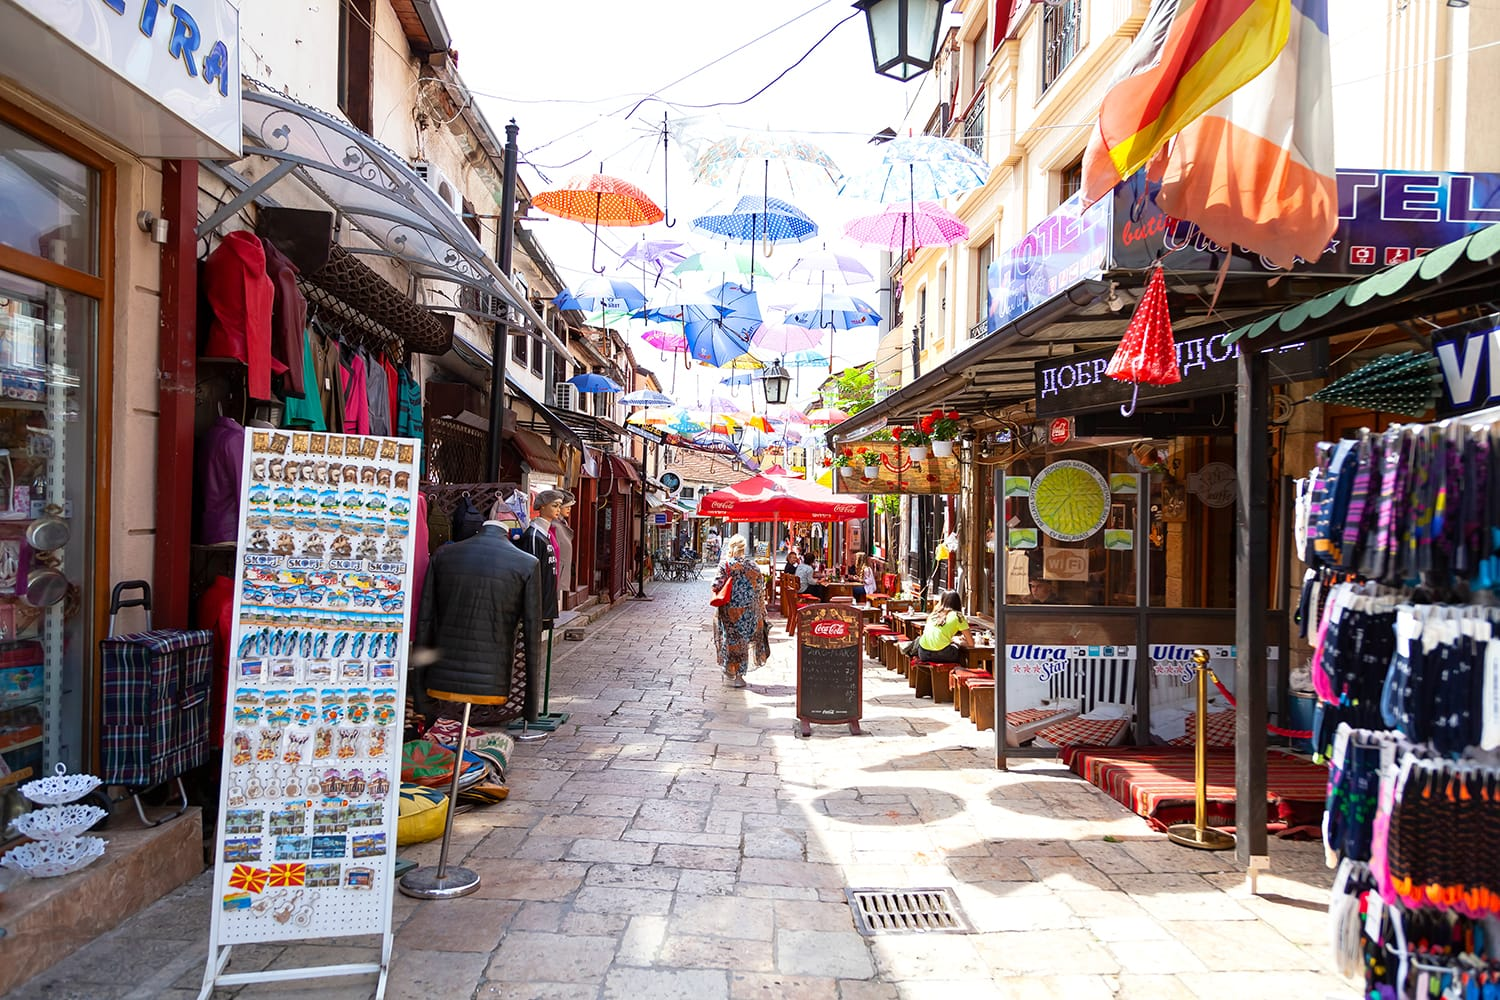 Streets of the Old bazaar in Skopje, Macedonia